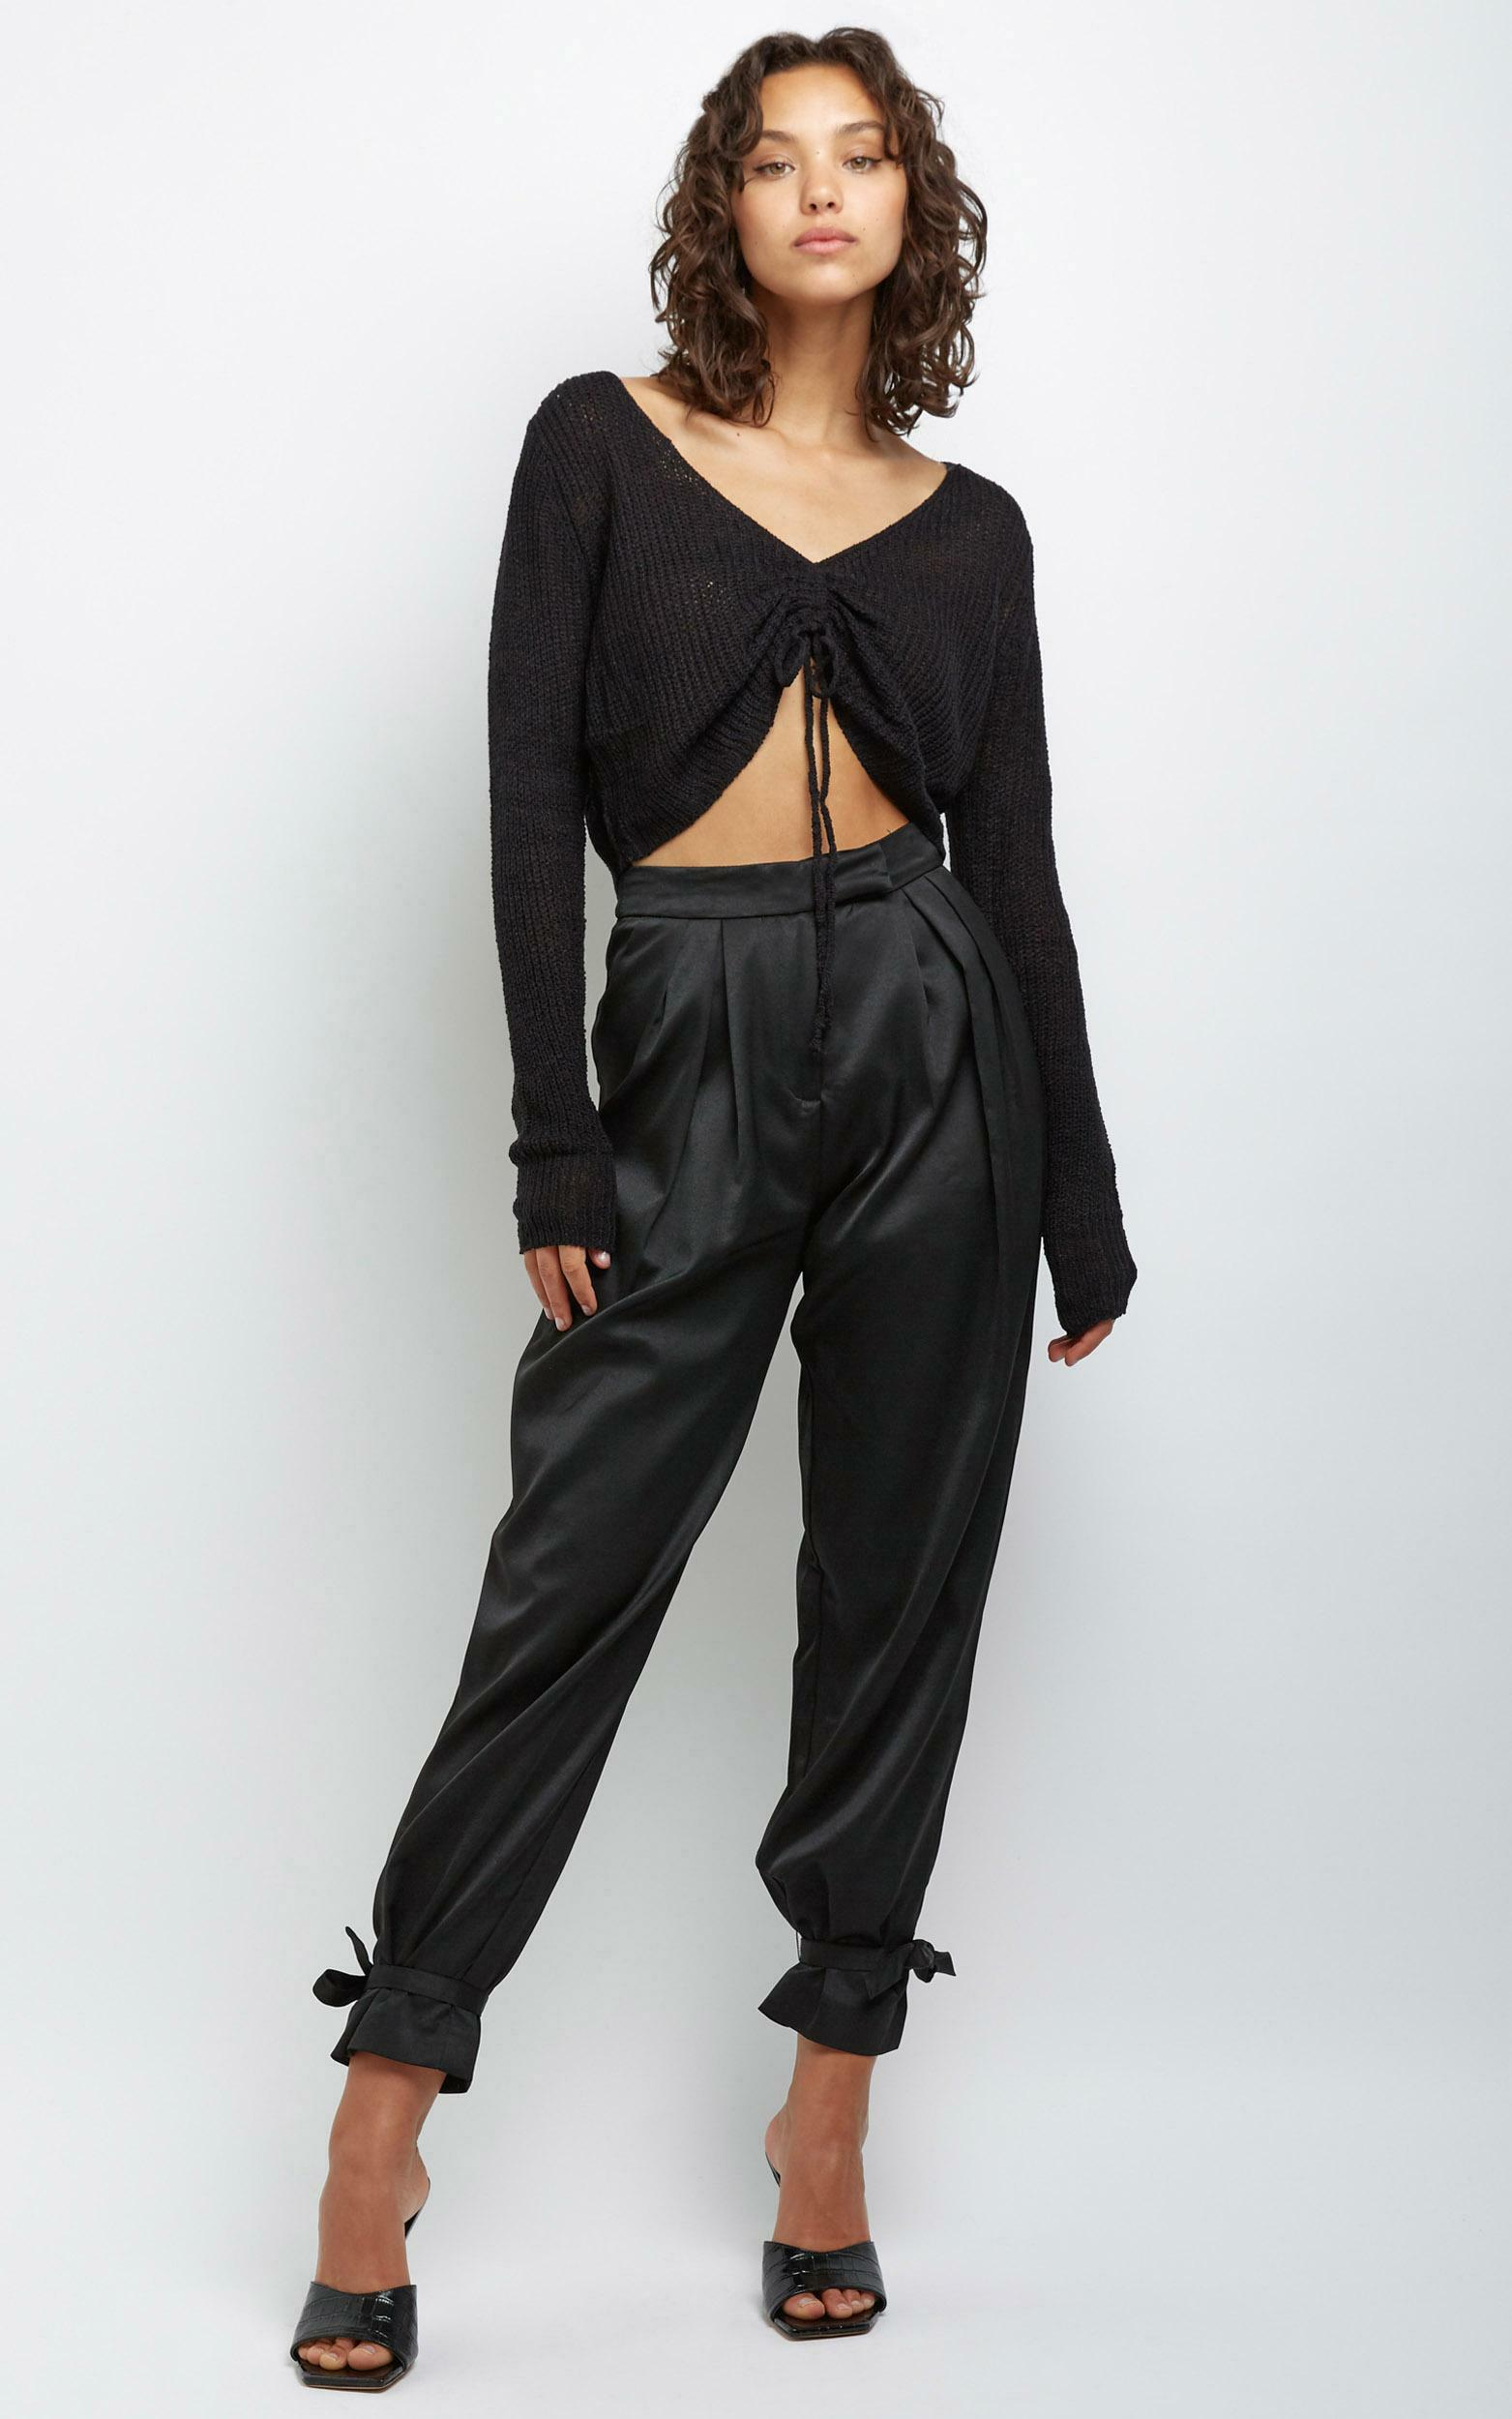 Anamarie Knit Top in Black - M/L, BLK1, hi-res image number null